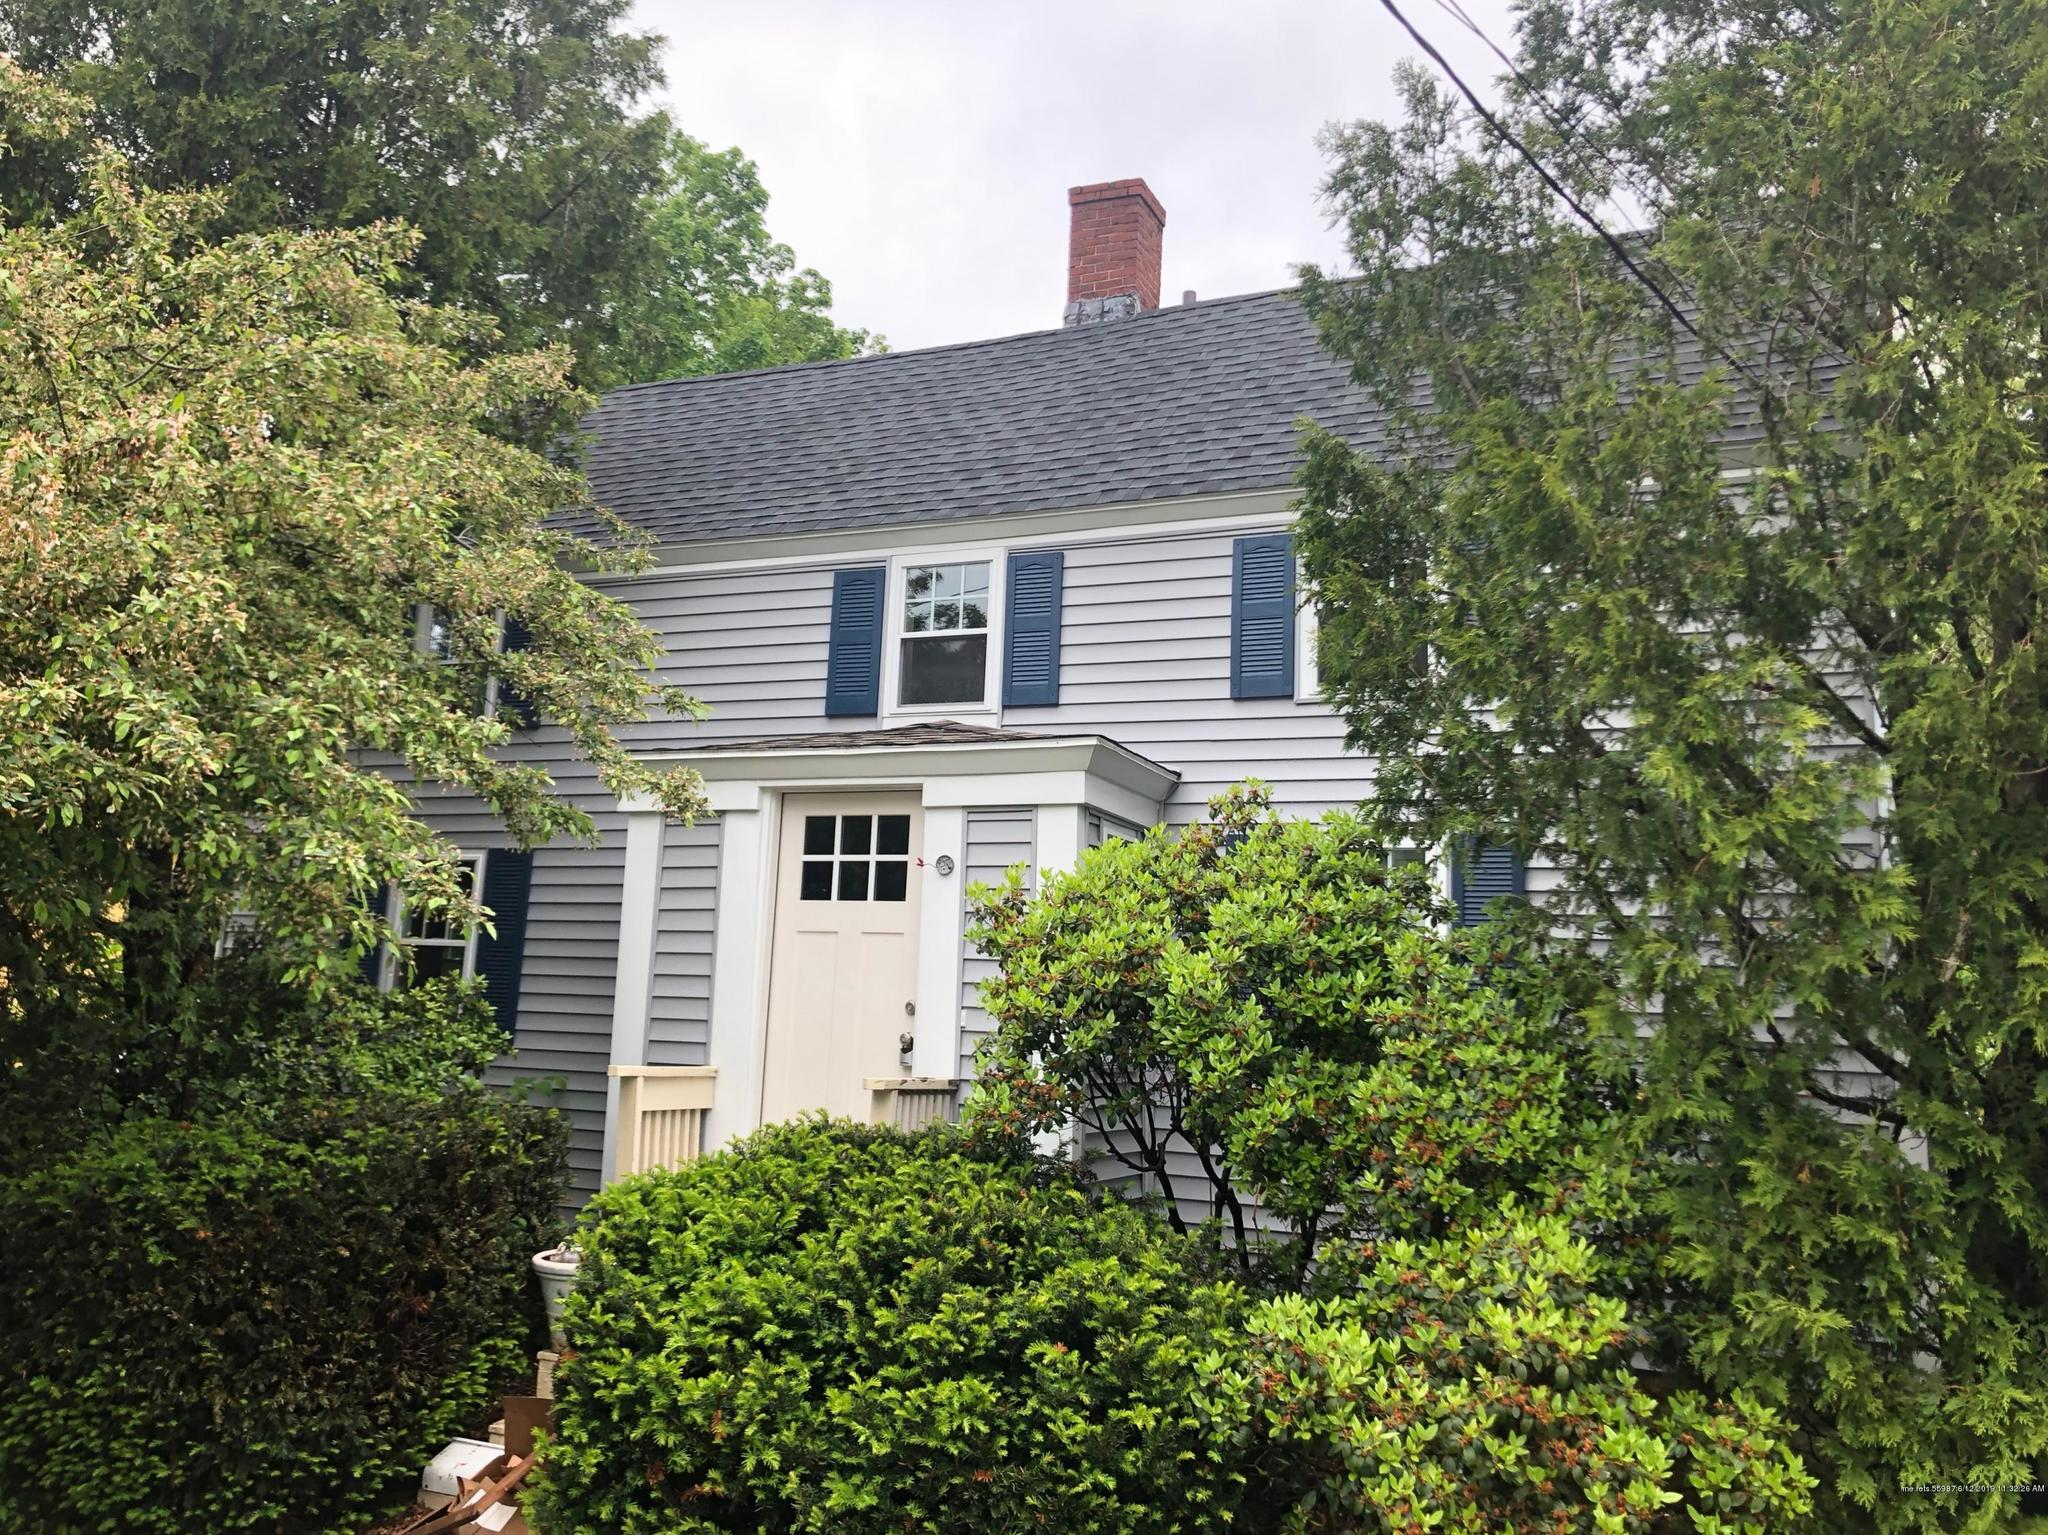 28 Water Street Kennebunk Me Mls 1419346 Verani Realty